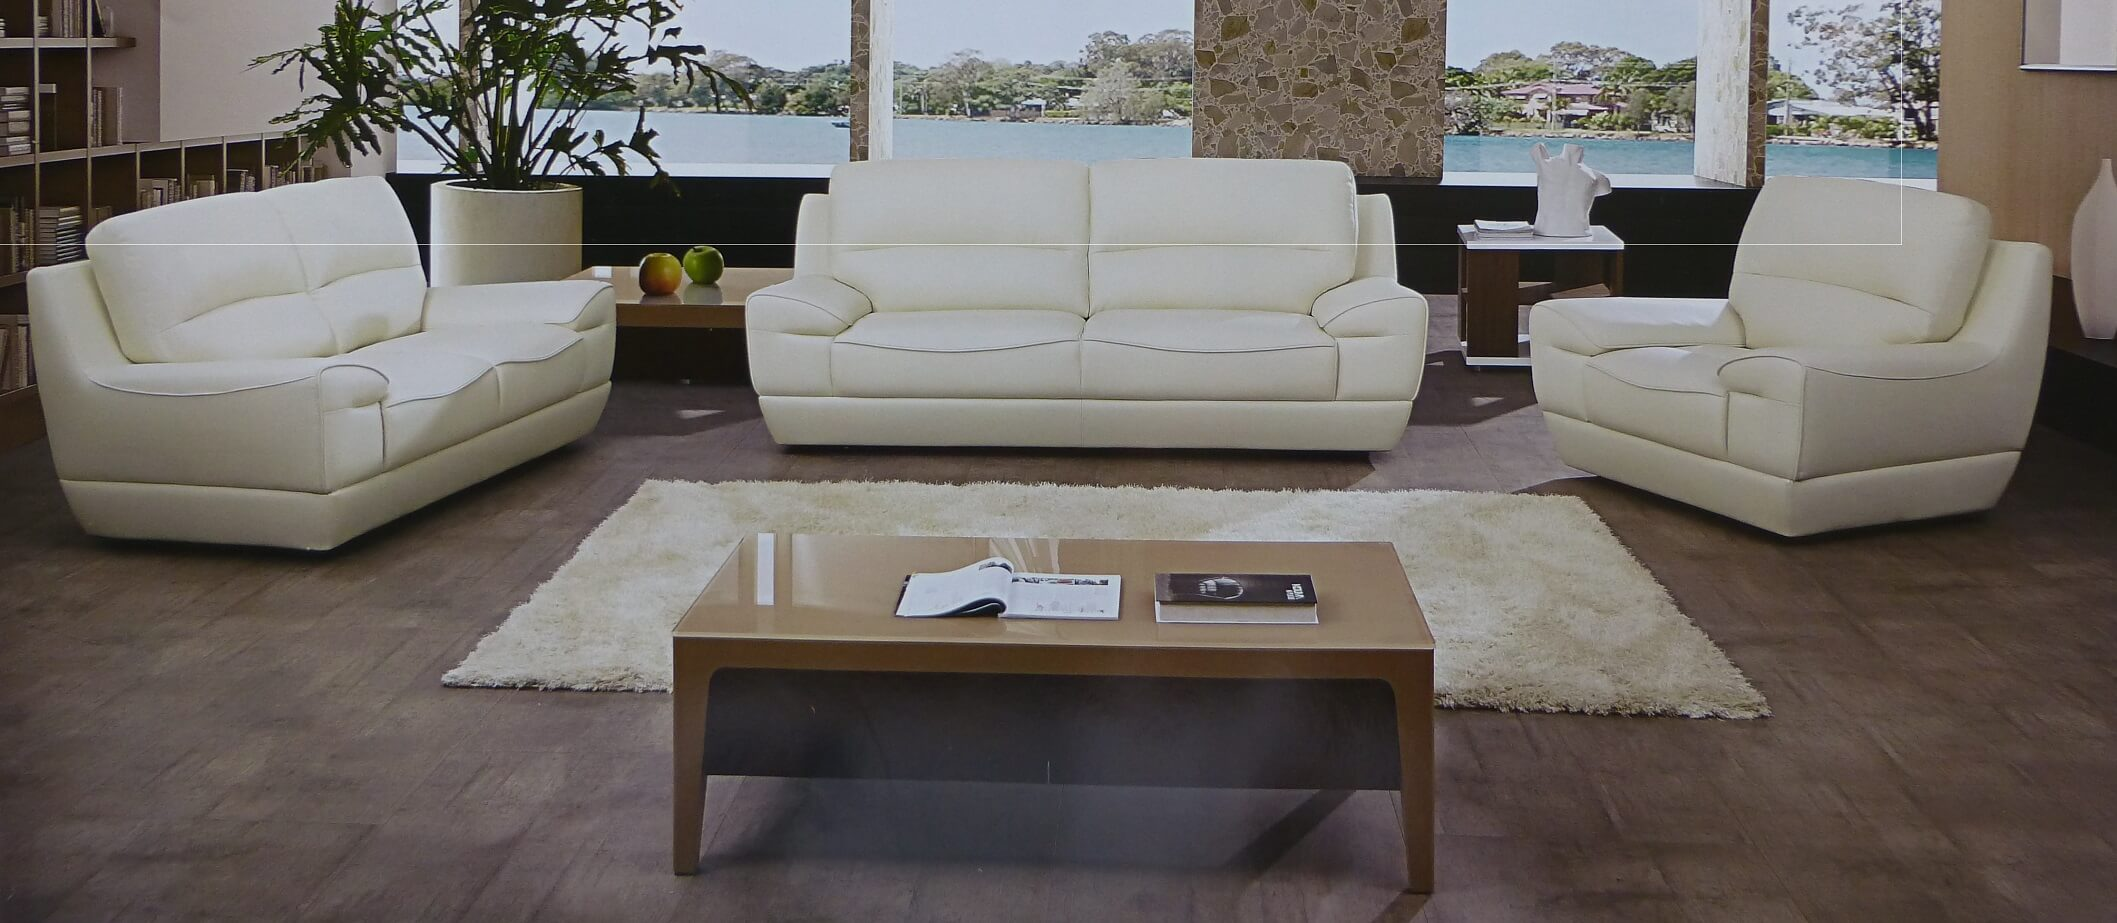 Dado Italian Off White Leather Modern Sofa Set